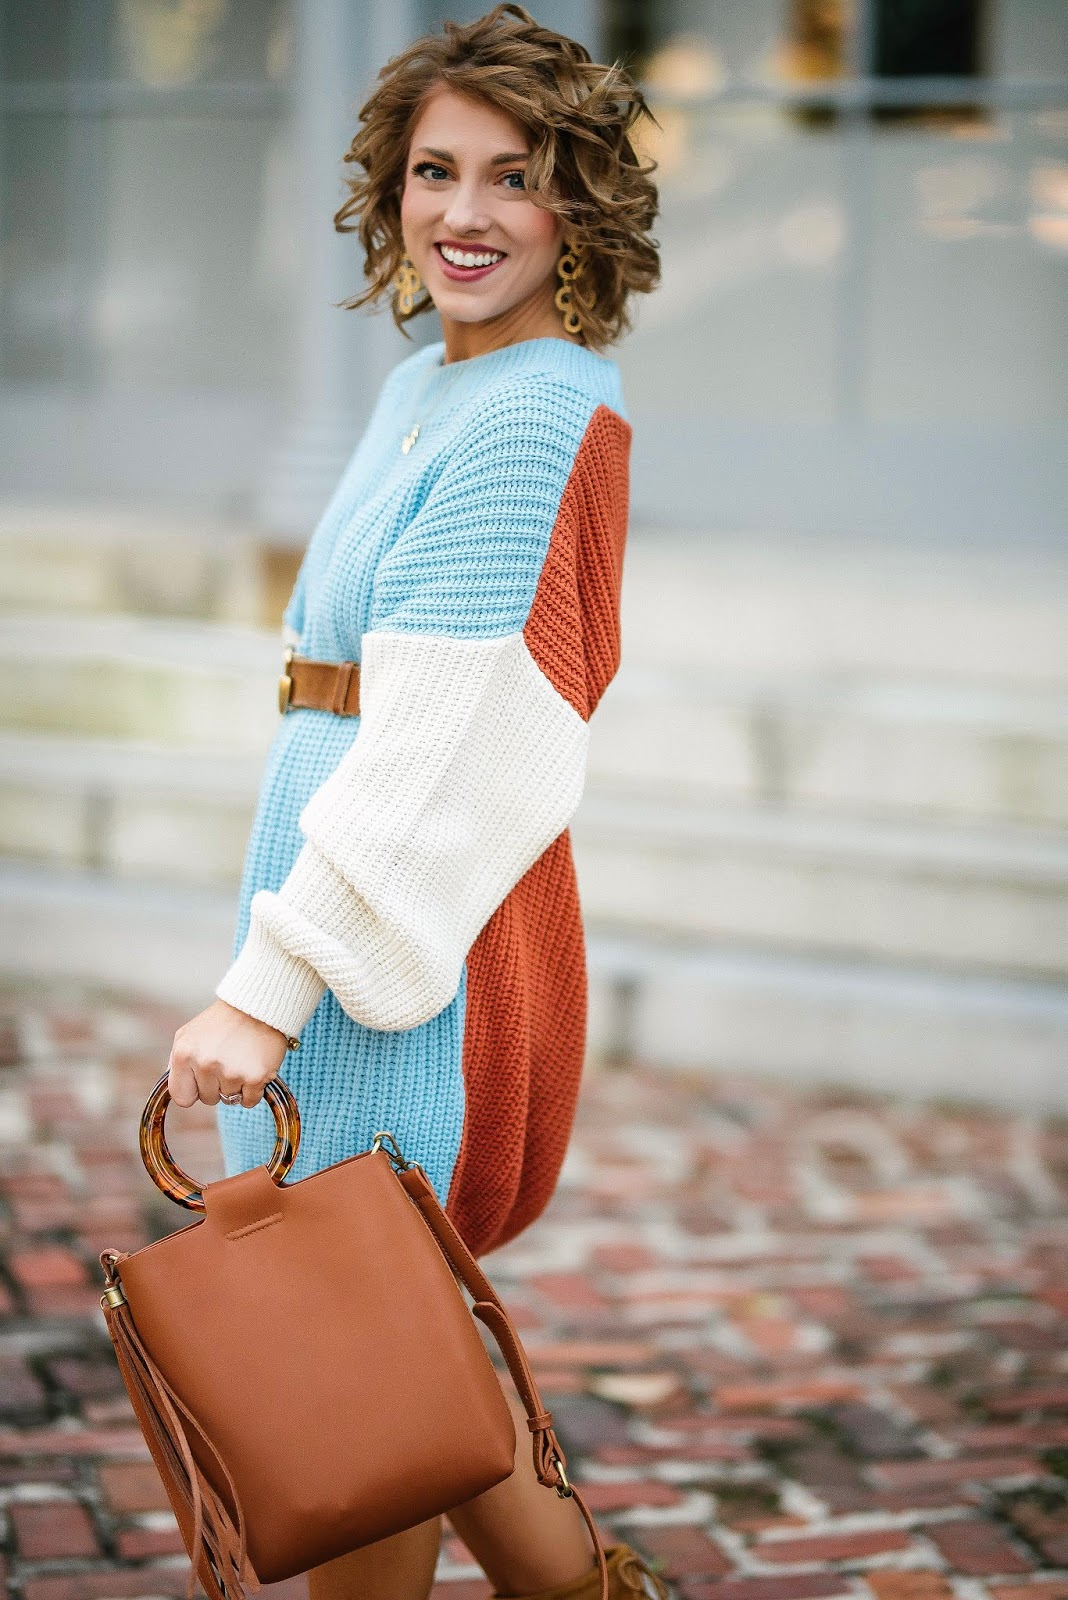 $40 Color Block Sweater Dress + Gucci Belt - Something Delightful Blog #fallfashion #fallstyle #sweaterdress